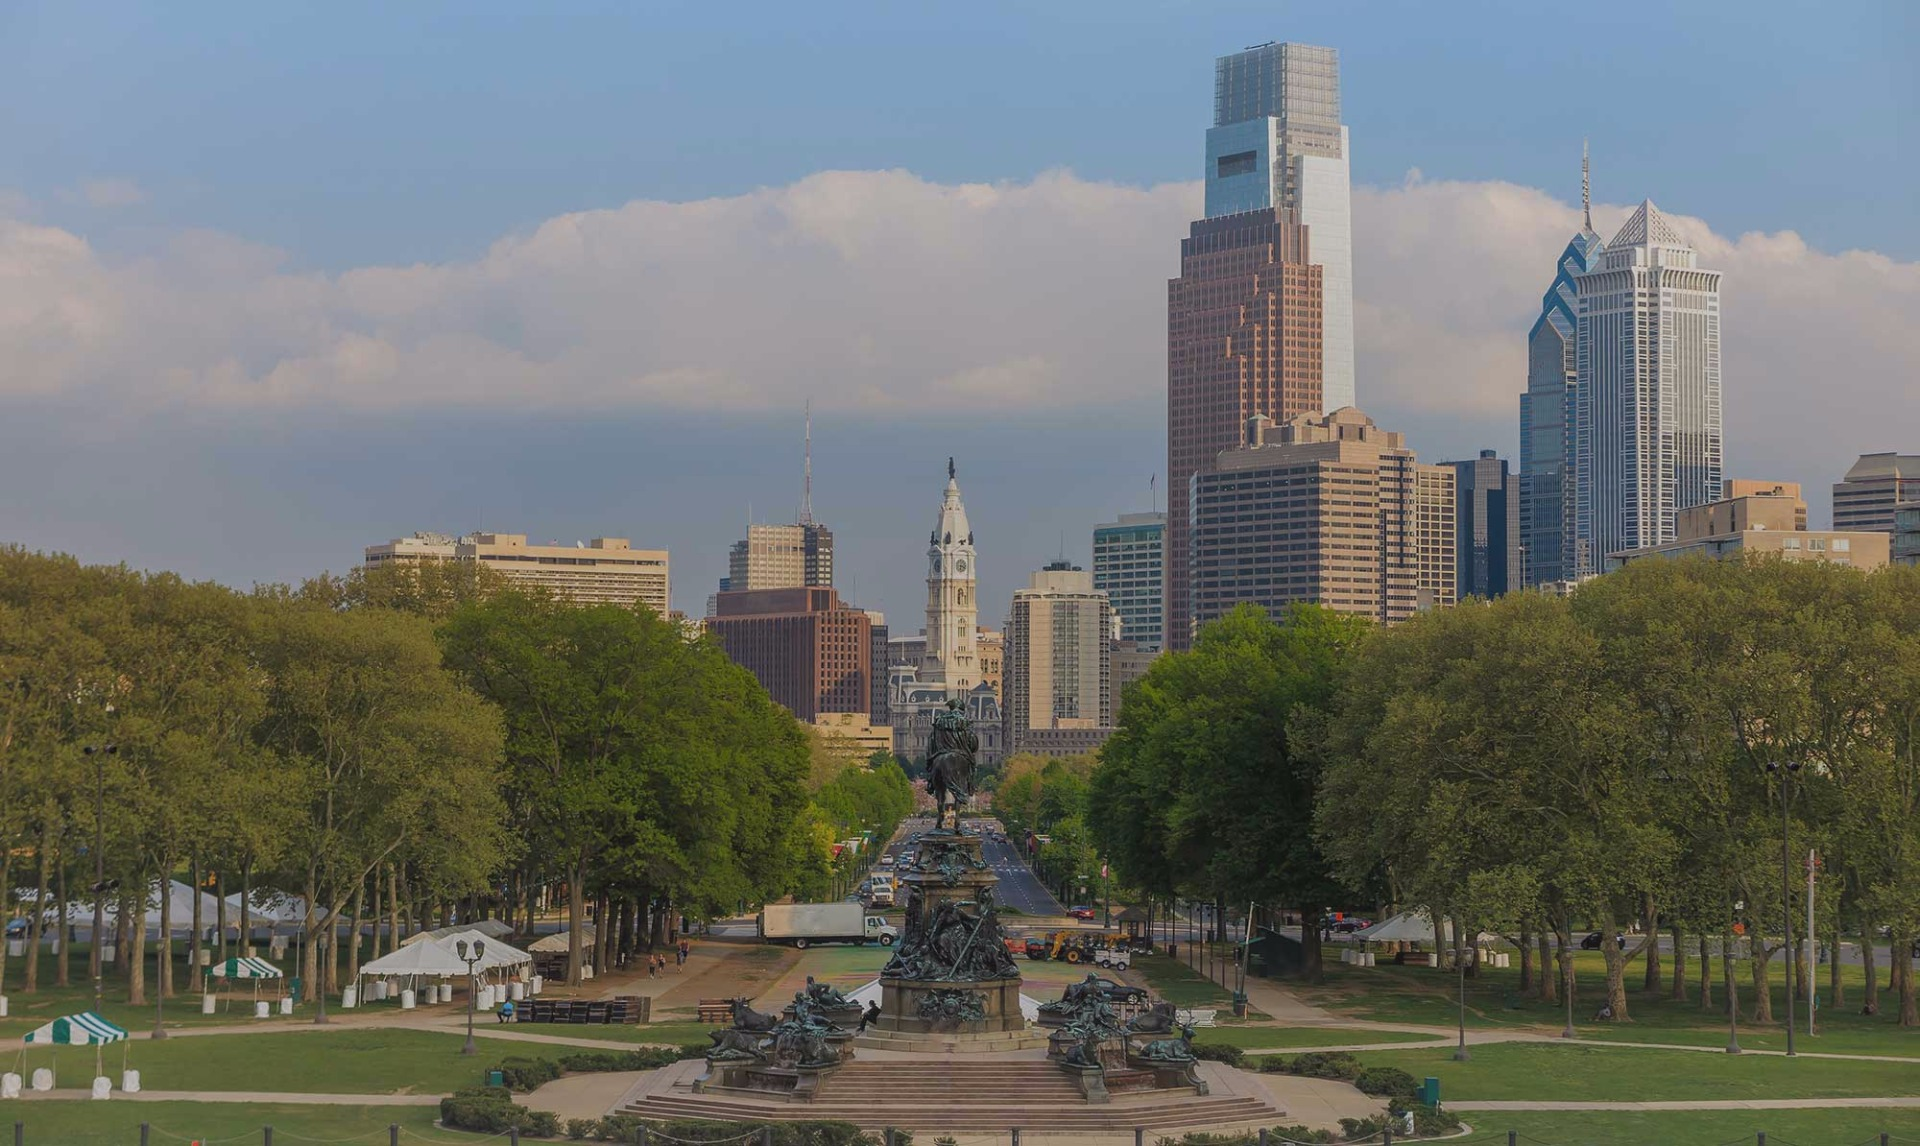 View of street with City Hall in Philadelphia